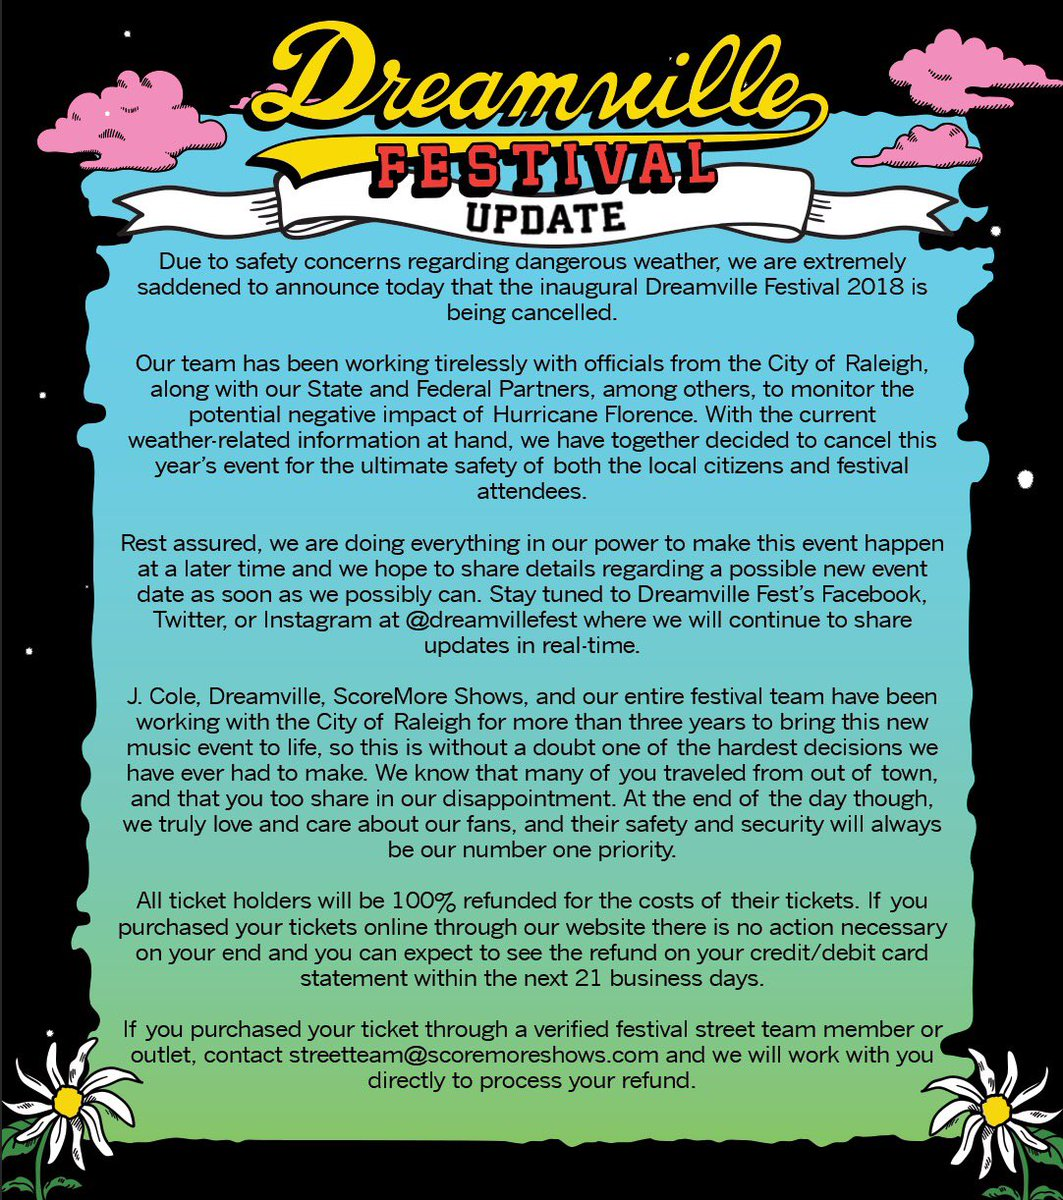 dreamville on twitter due to imminent weather and safety concerns